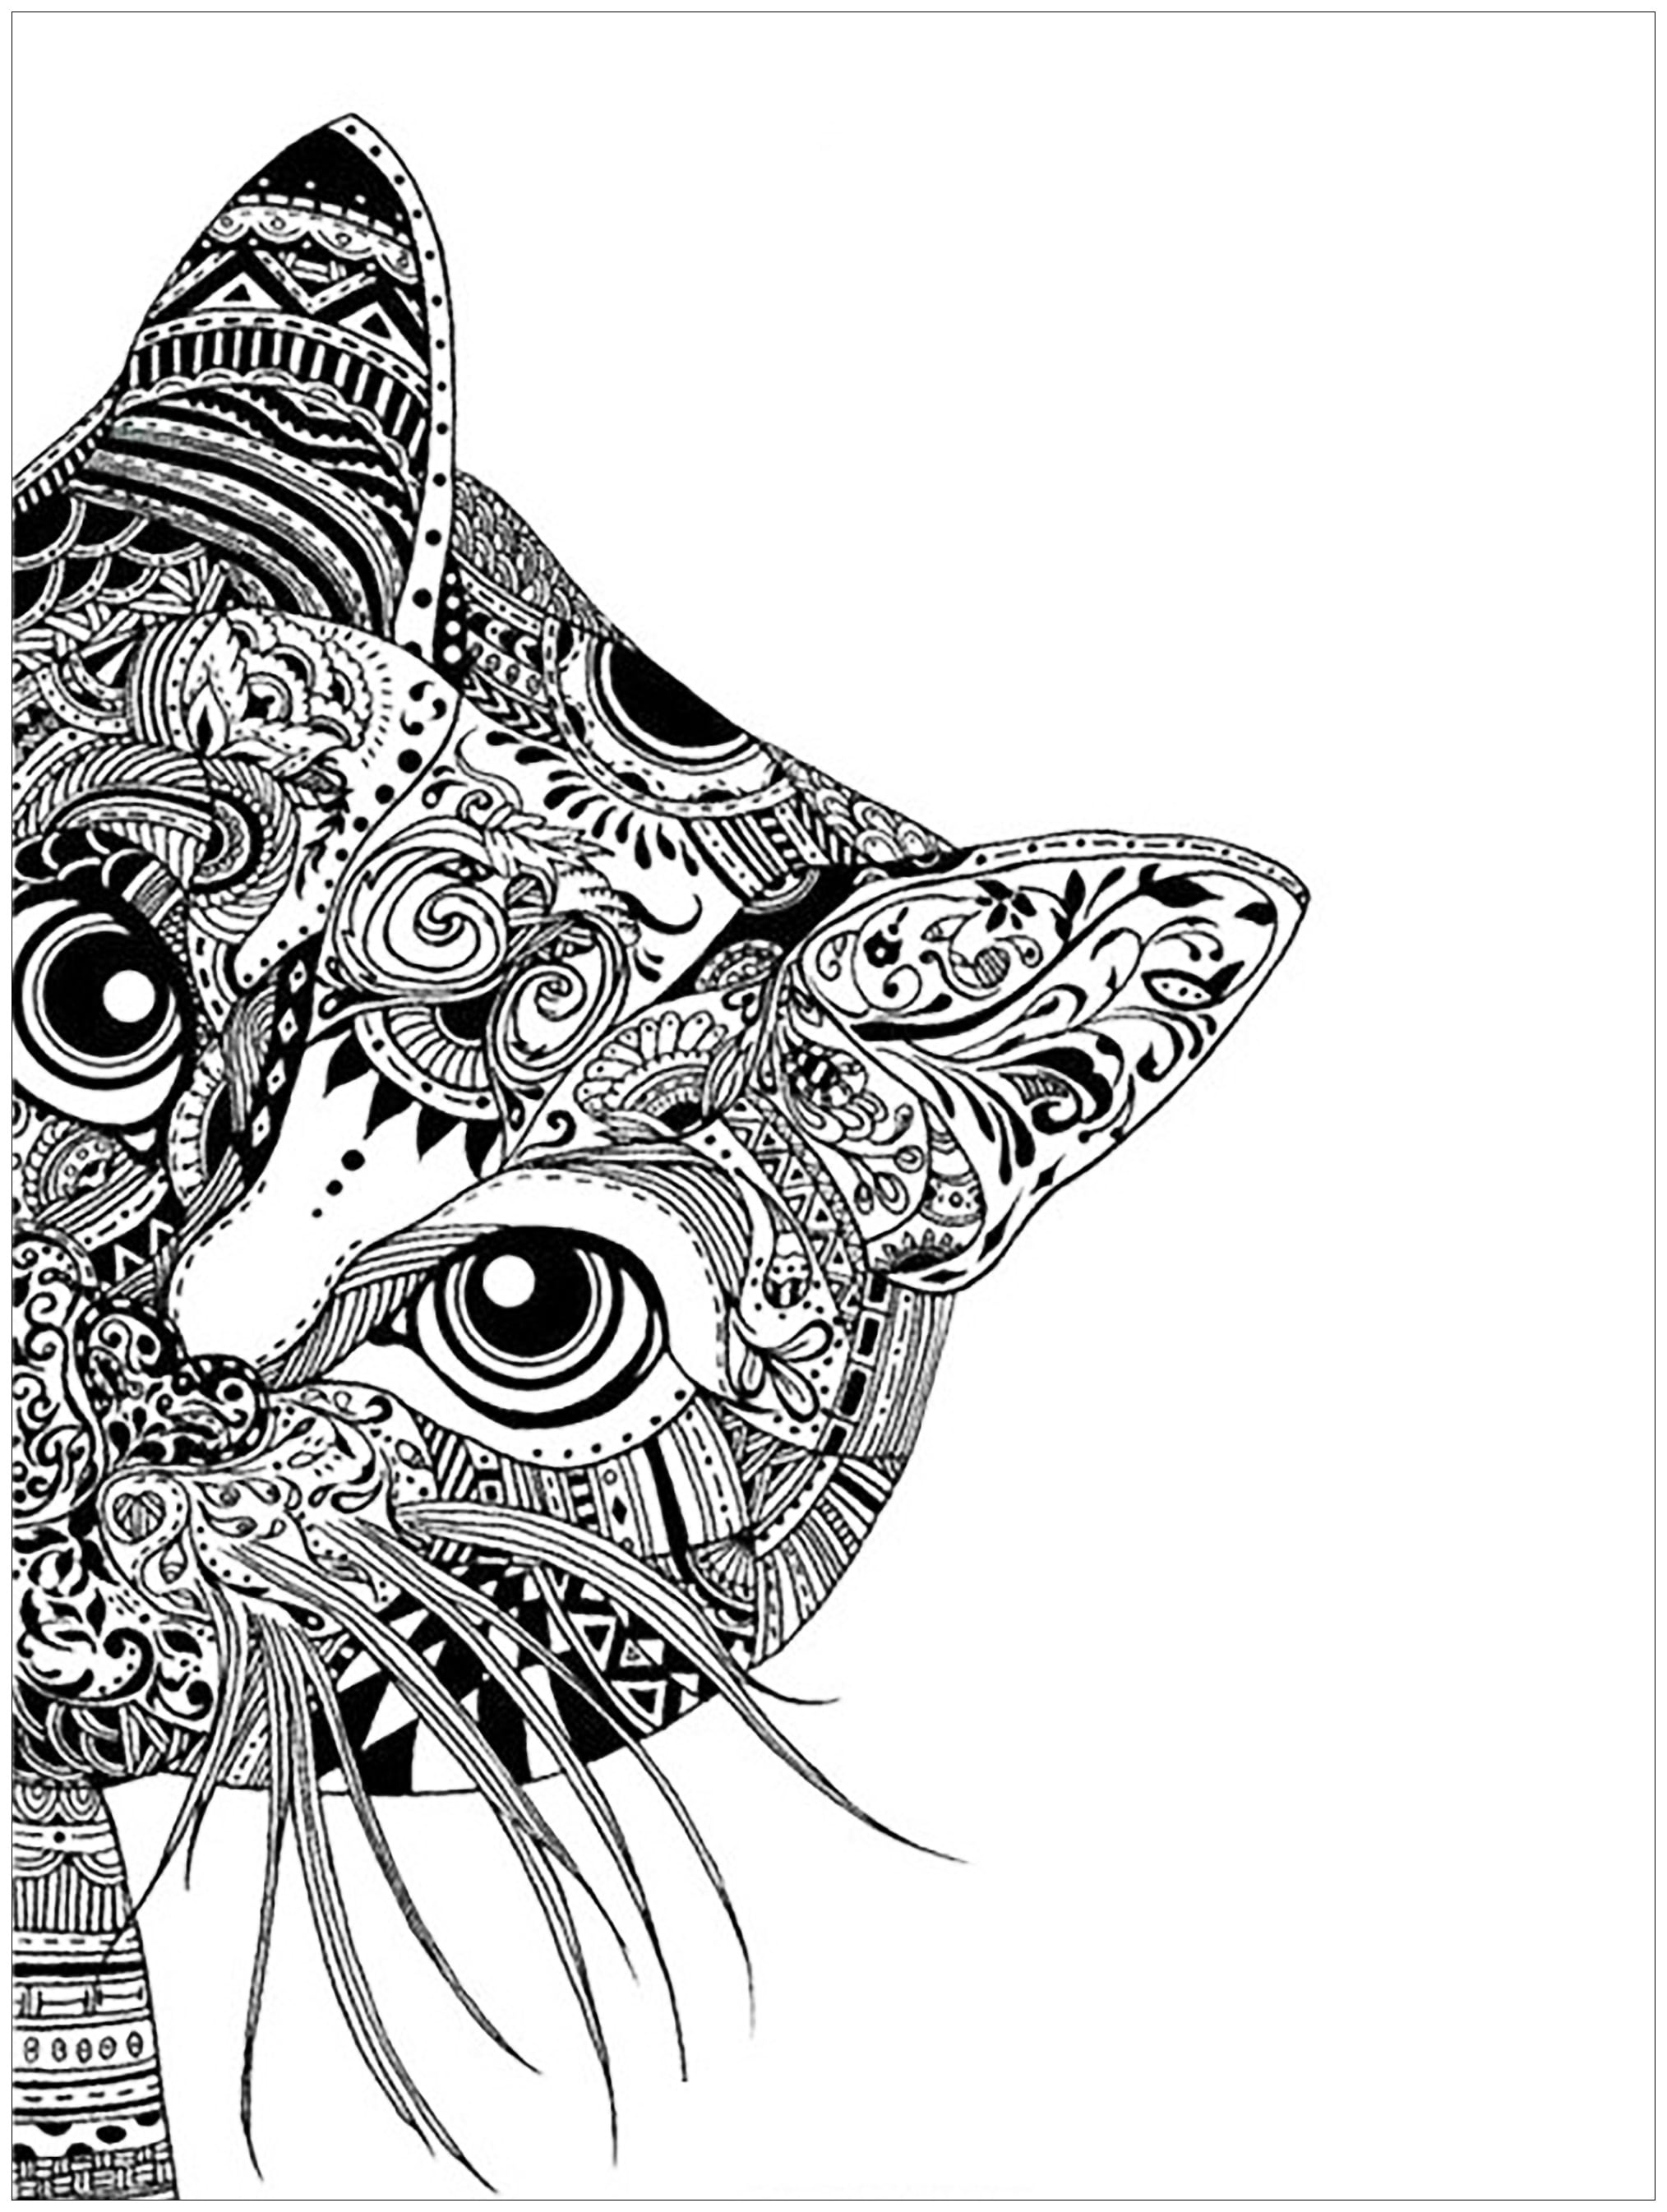 Animal Coloring Pages For Adults 42 With Animal Coloring Pages For